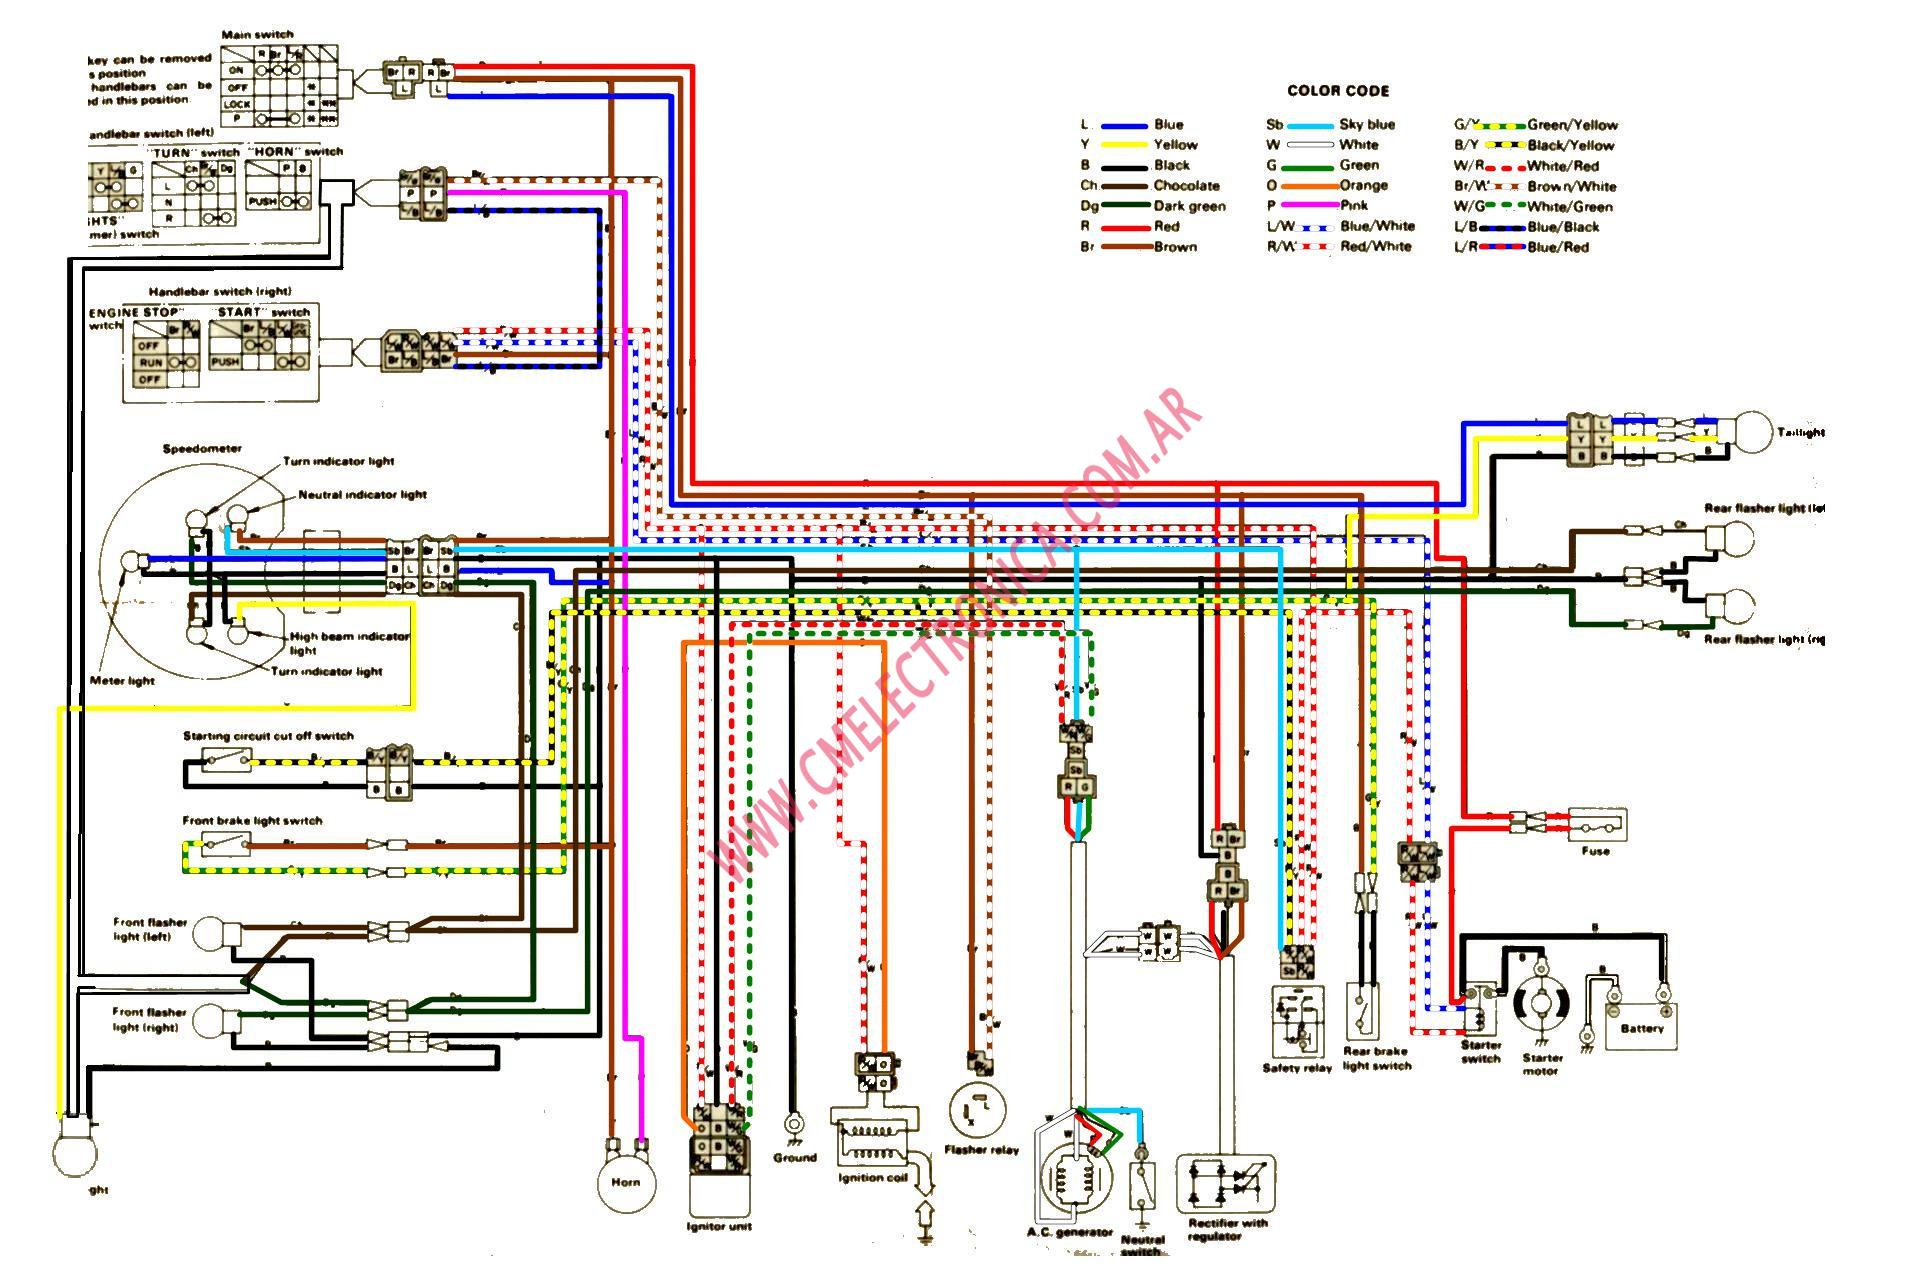 yamaha sr250 91 trying to diagnose my starter problem here s rh reddit com Motor Control Wiring Diagrams Motor Contactor Wiring Diagram